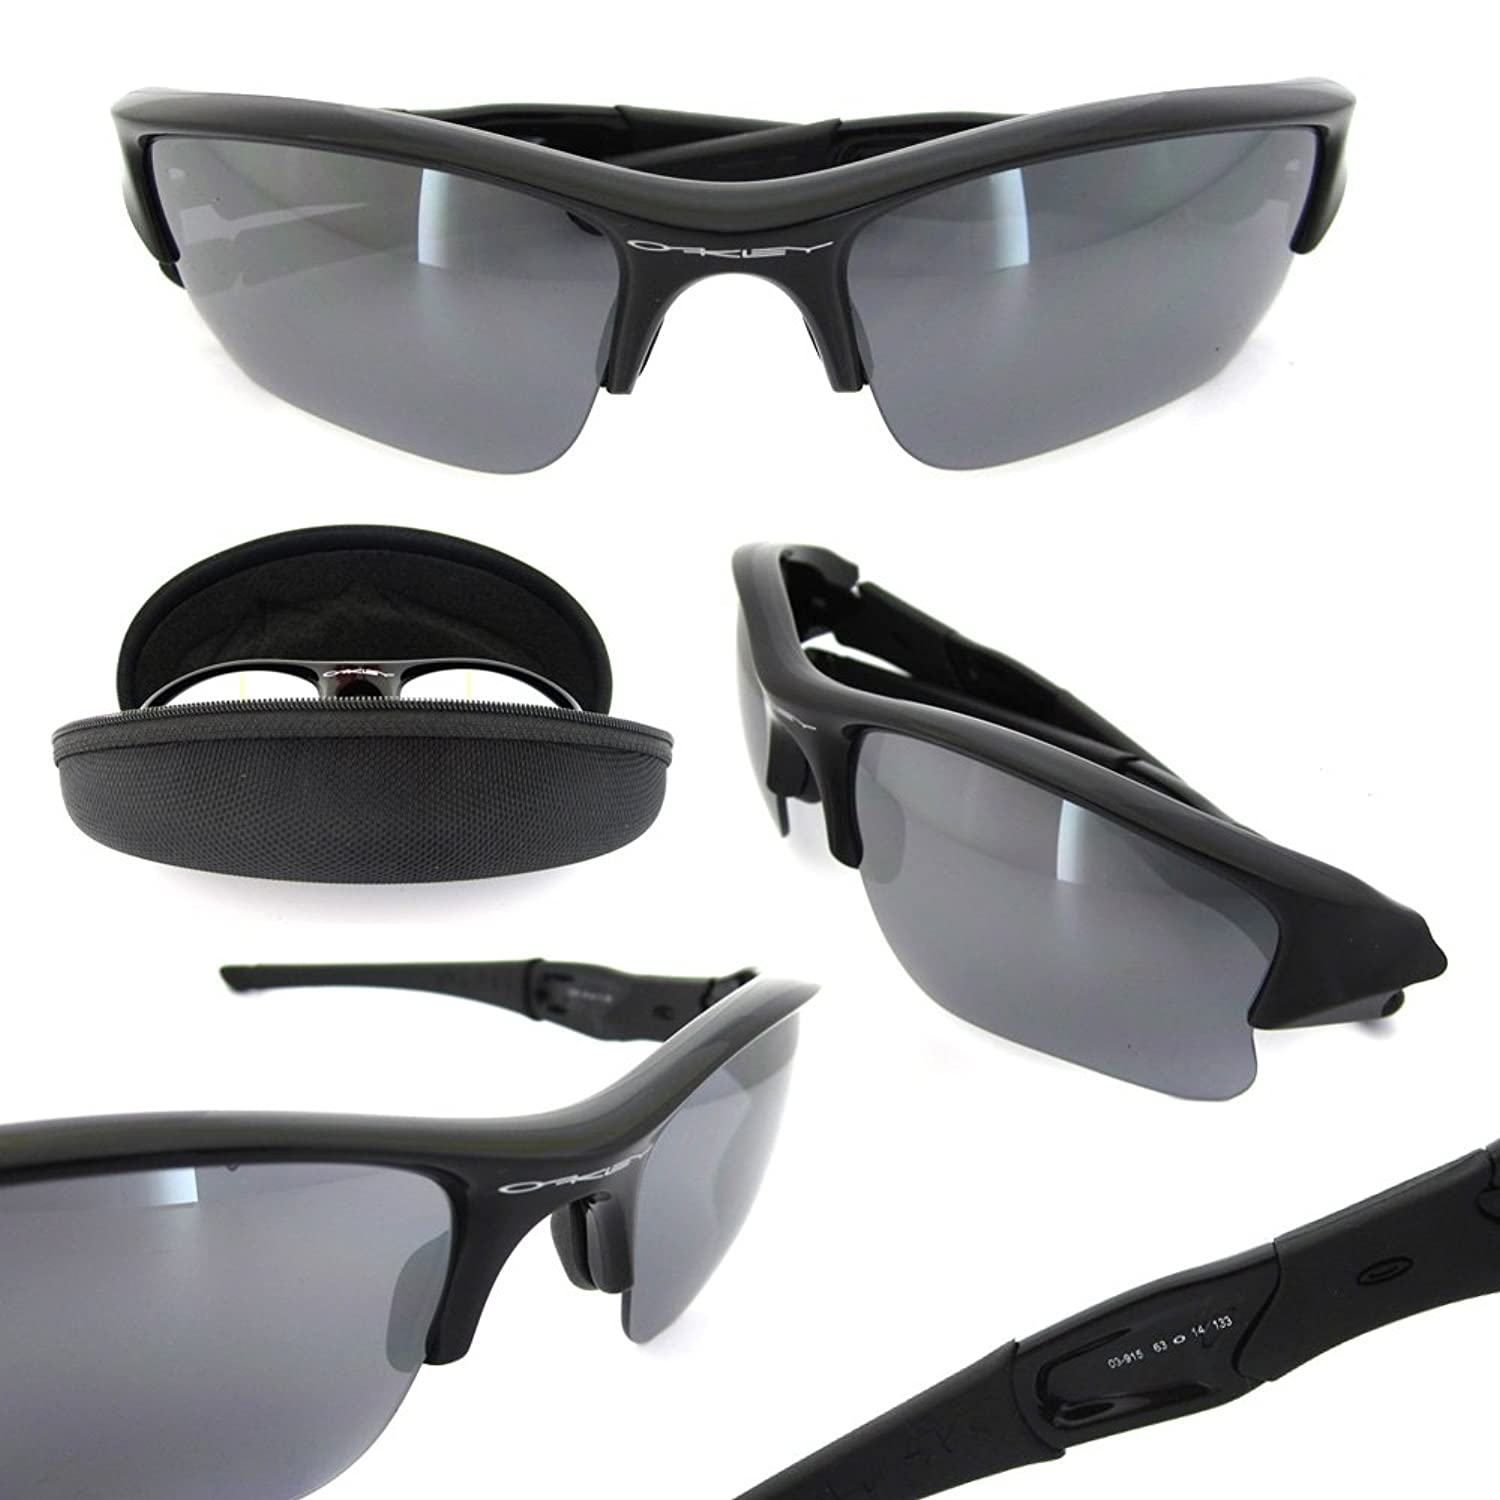 ac6a475c94a2 Amazon.com  Oakley Flak Jacket XLJ Jet Black w Blk Iridium 03-915 + Free SD  Glasses+Cleaning Kit  Clothing